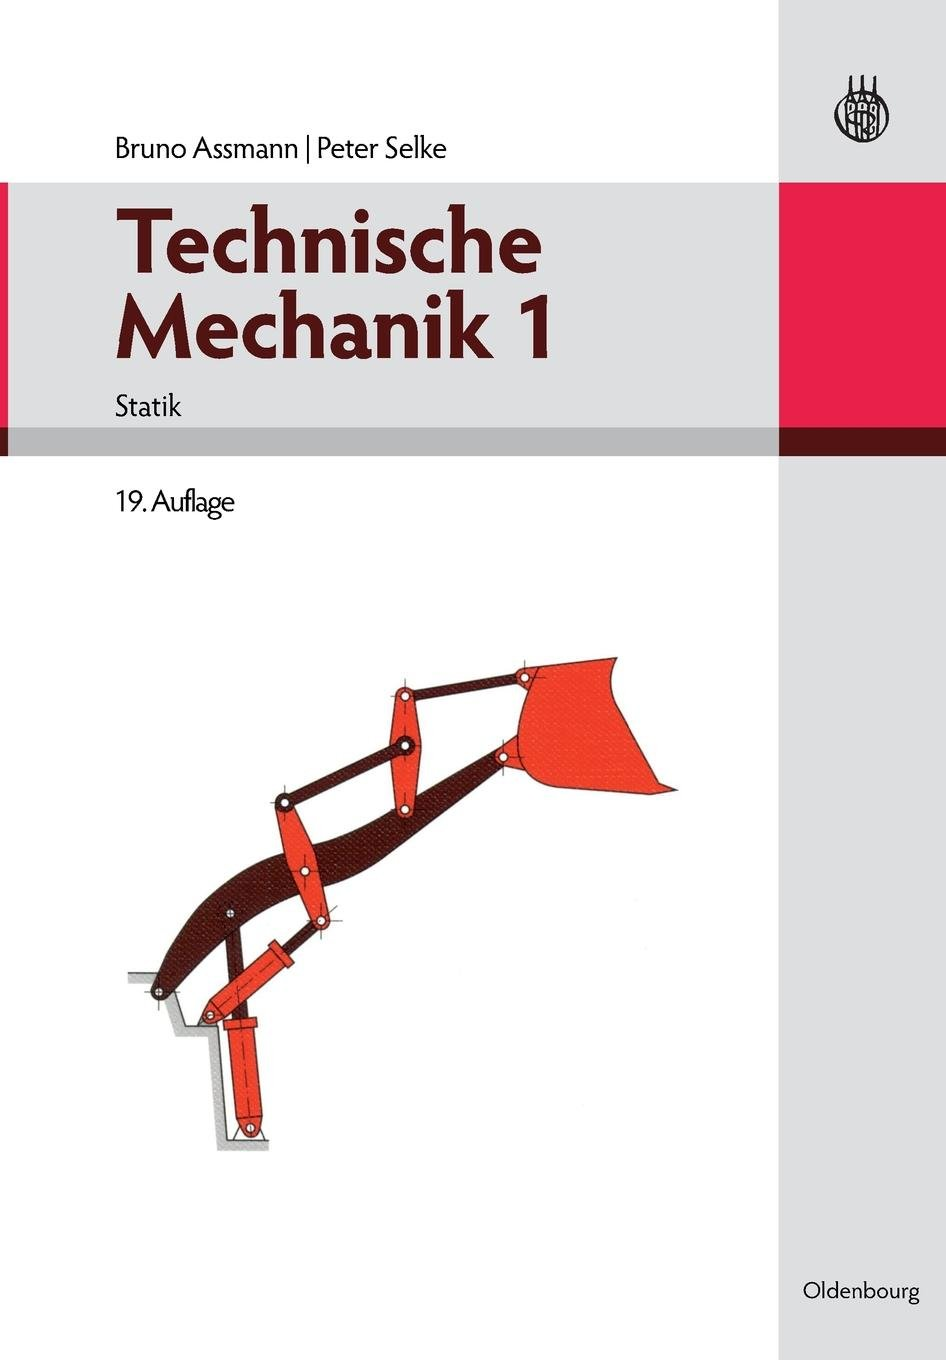 Technische Mechanik 1-3: Technische Mechanik 1 (German Edition): Band 1: Statik